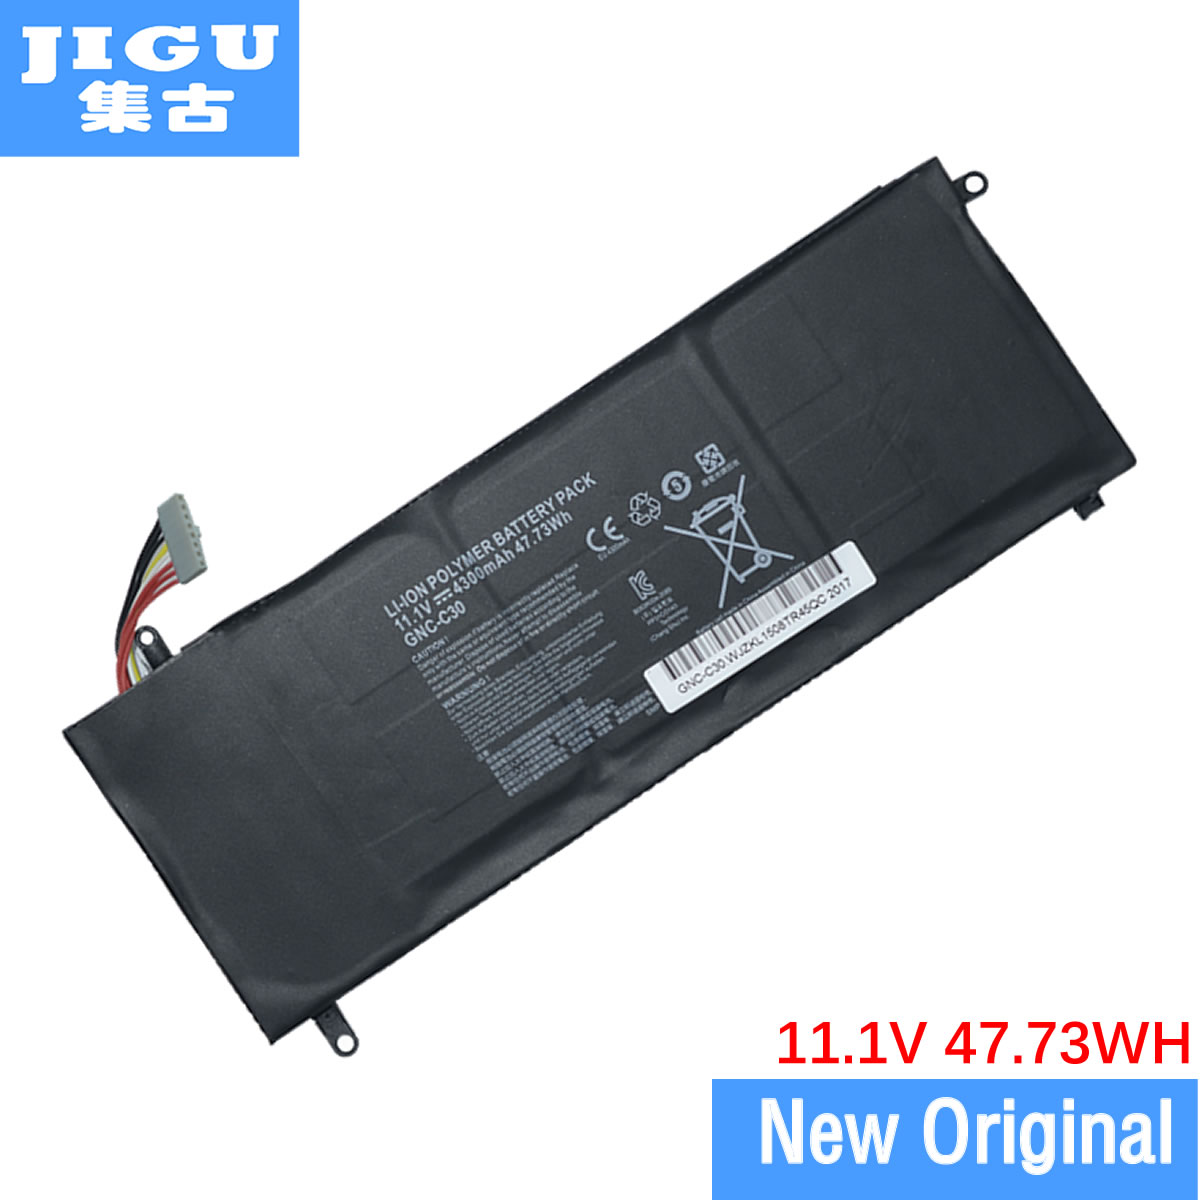 JIGU New 11.1V 4300mAh 47.73Wh Laptop Battery GNC-C30 961TA002F For GIGABYTE U2442 U24F P34G V2 High Quality jigu original laptop battery gns 160 gns i60 961ta010fa for gigabyte p35g v2 p35k p35w v2 p35x v3 p37x v5 p57w p57x v6